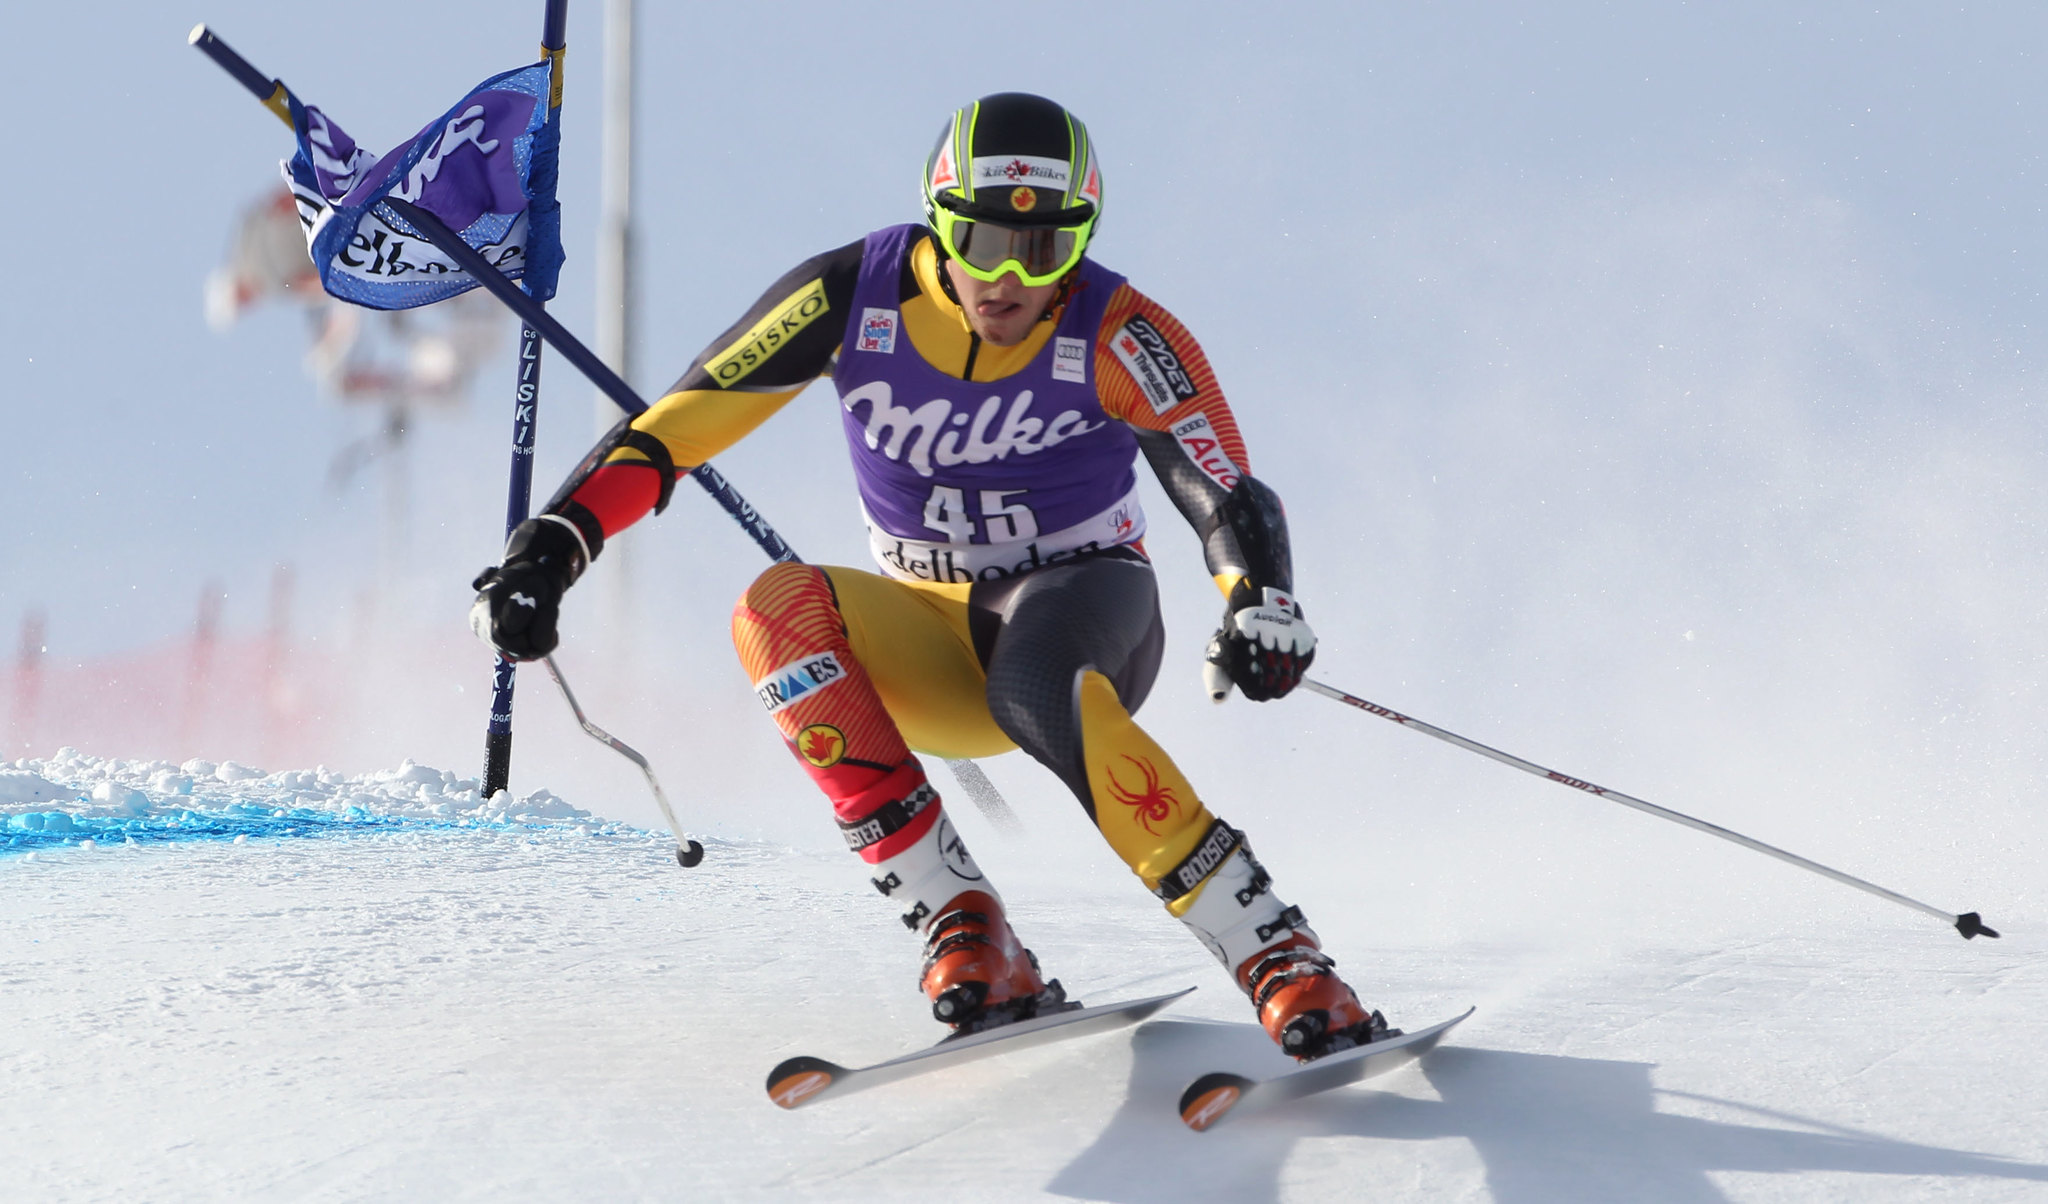 Philip Brown in the men's giant slalom in Adelboden, Switzerland.